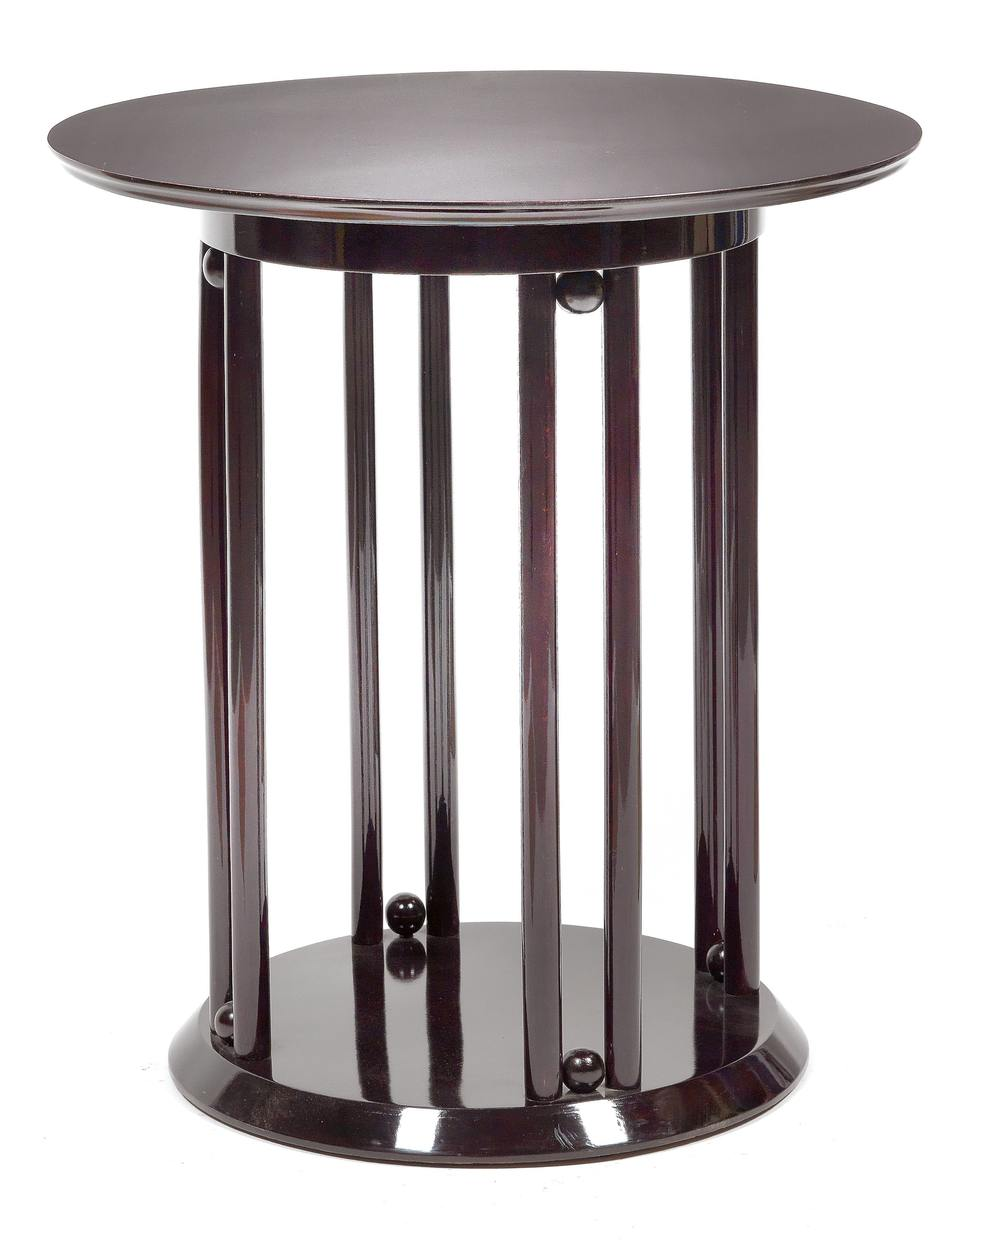 Josef Hoffmann (1870-1956) An Ebonised Occasional Table, for J & J Kohn, c.1906, Dorotheum Vienna